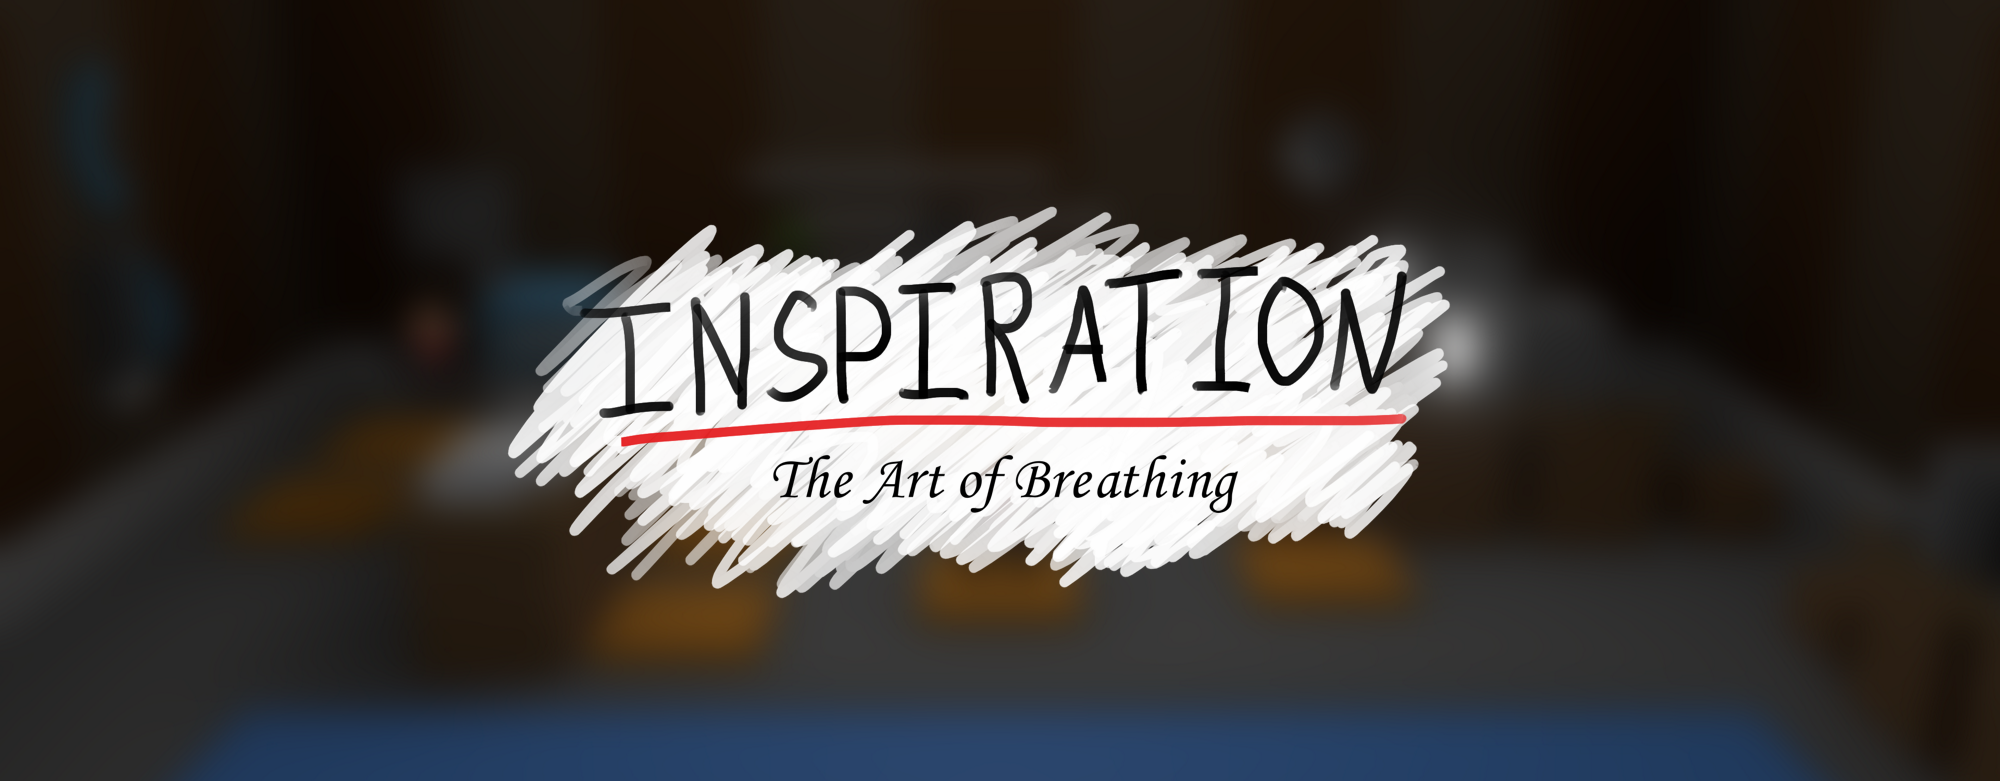 Inspiration: The Art of Breathing